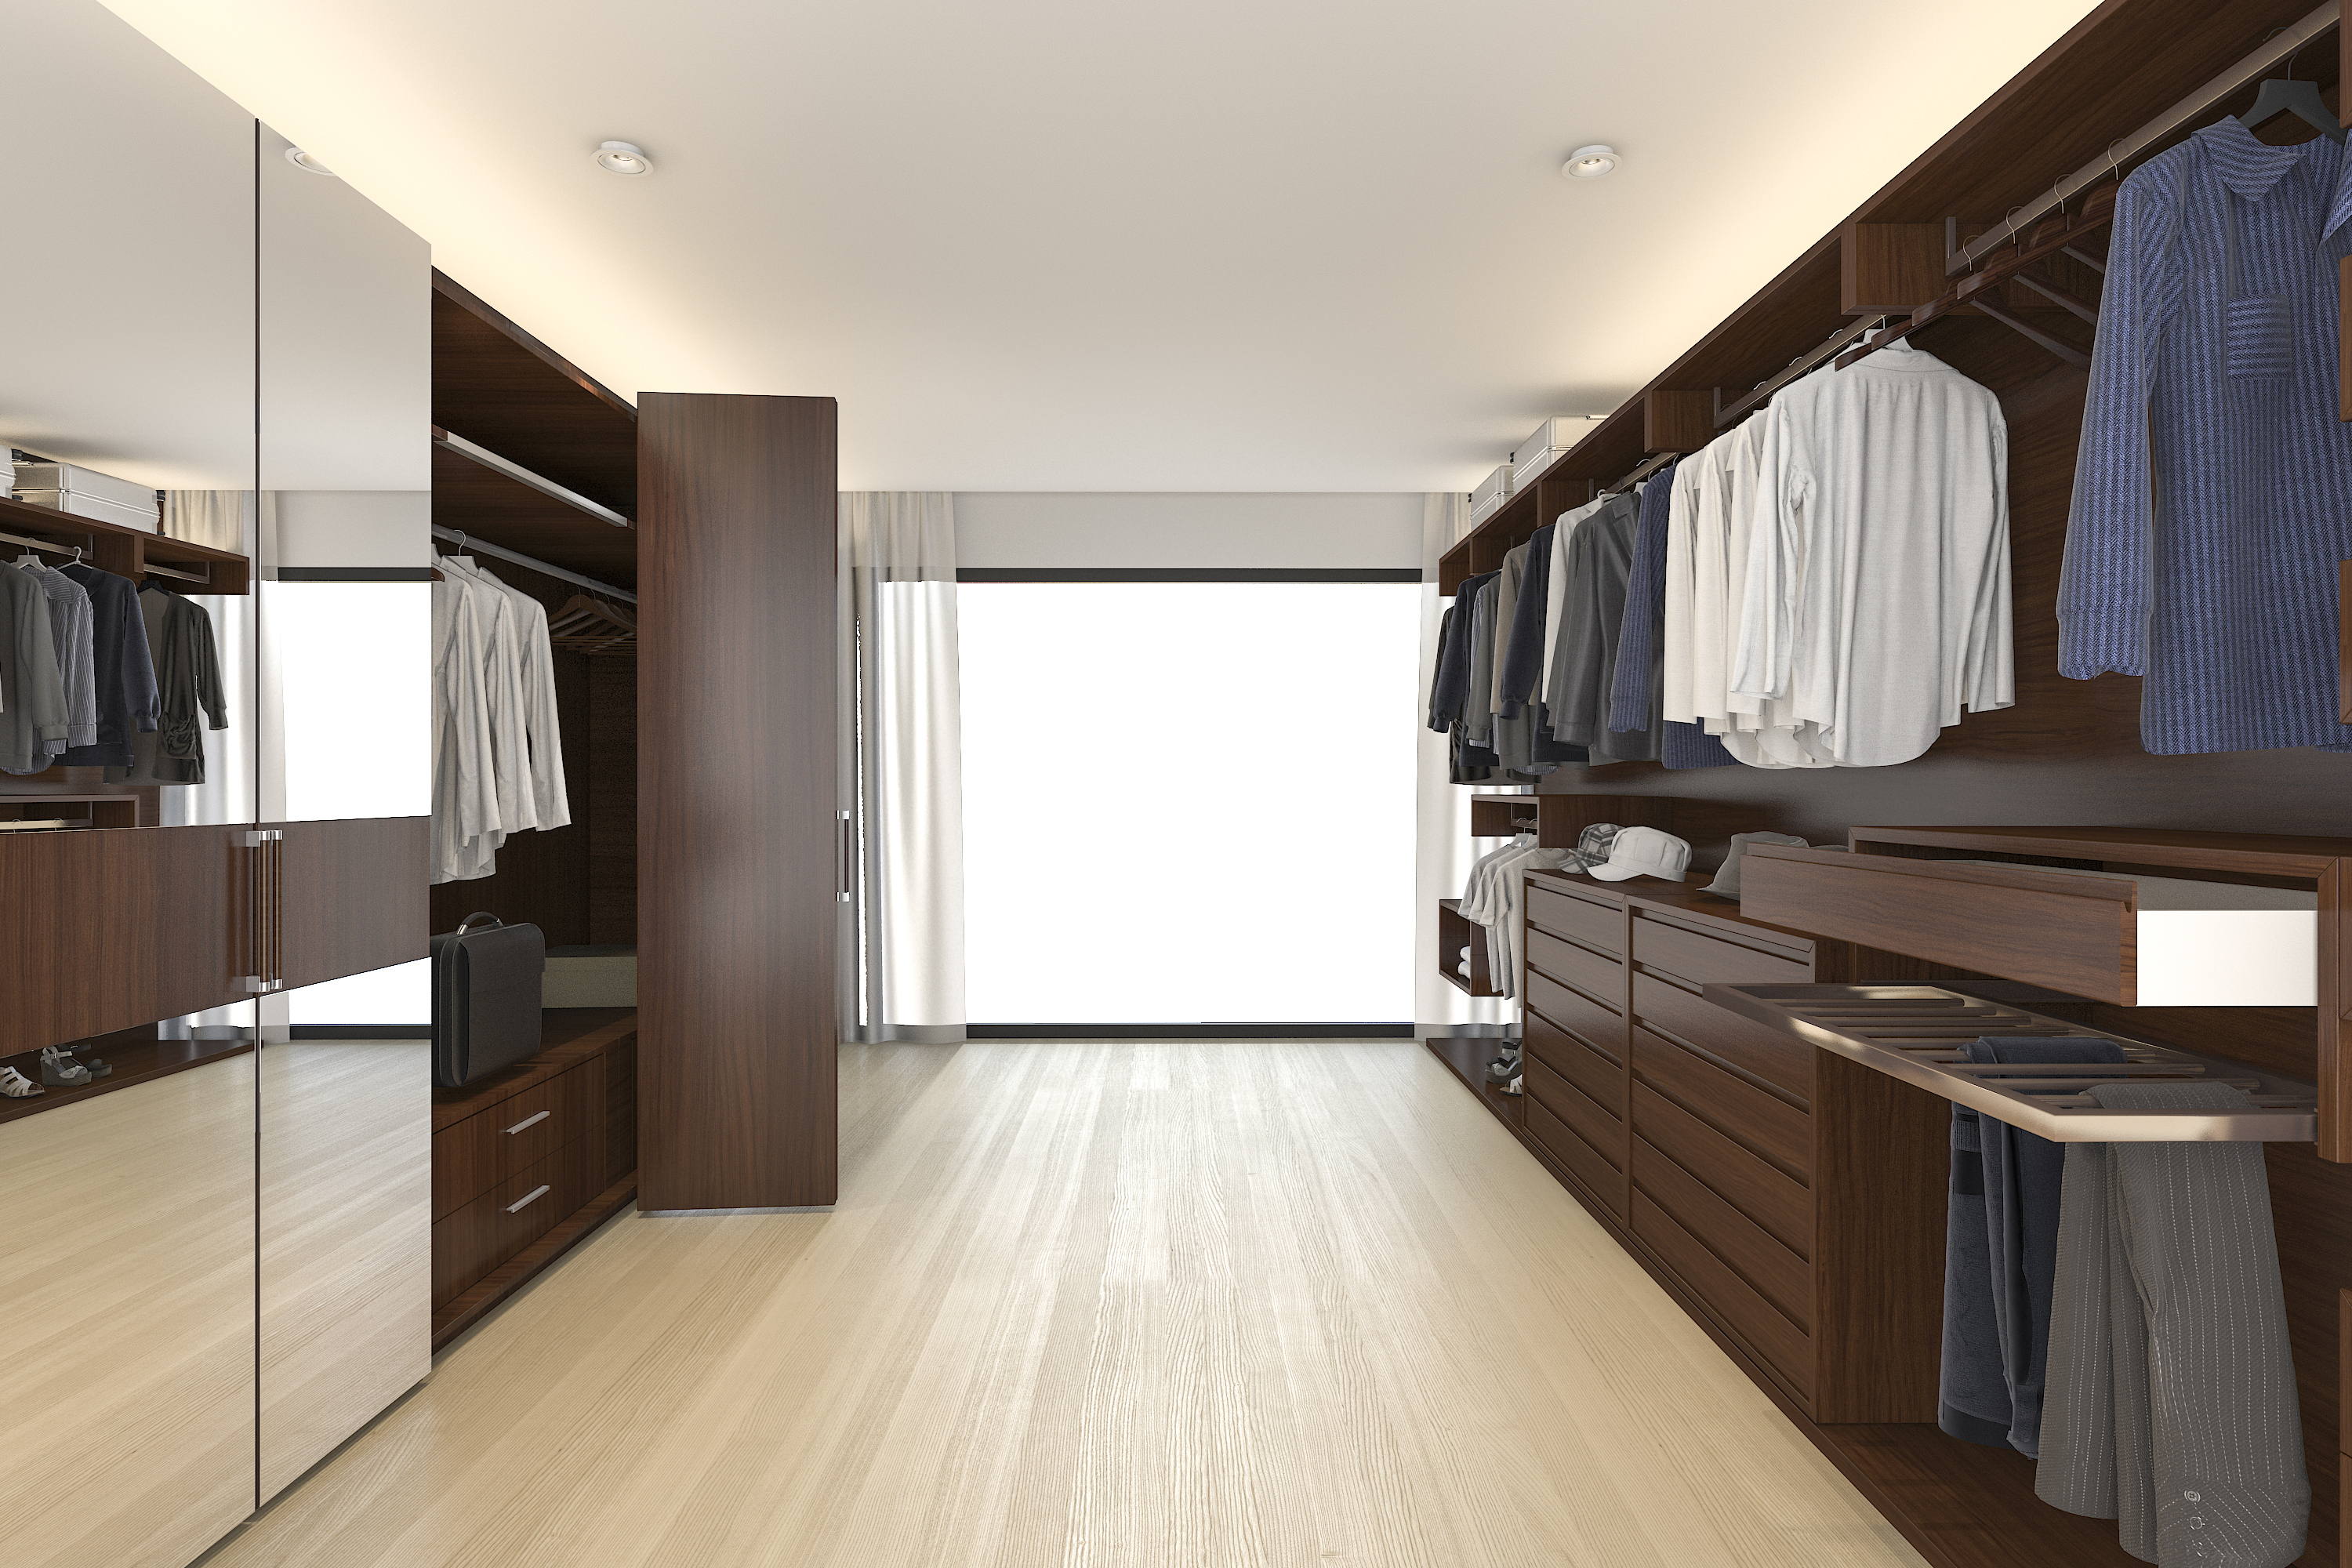 3d rendering wood wardrobe and walk in closet near window